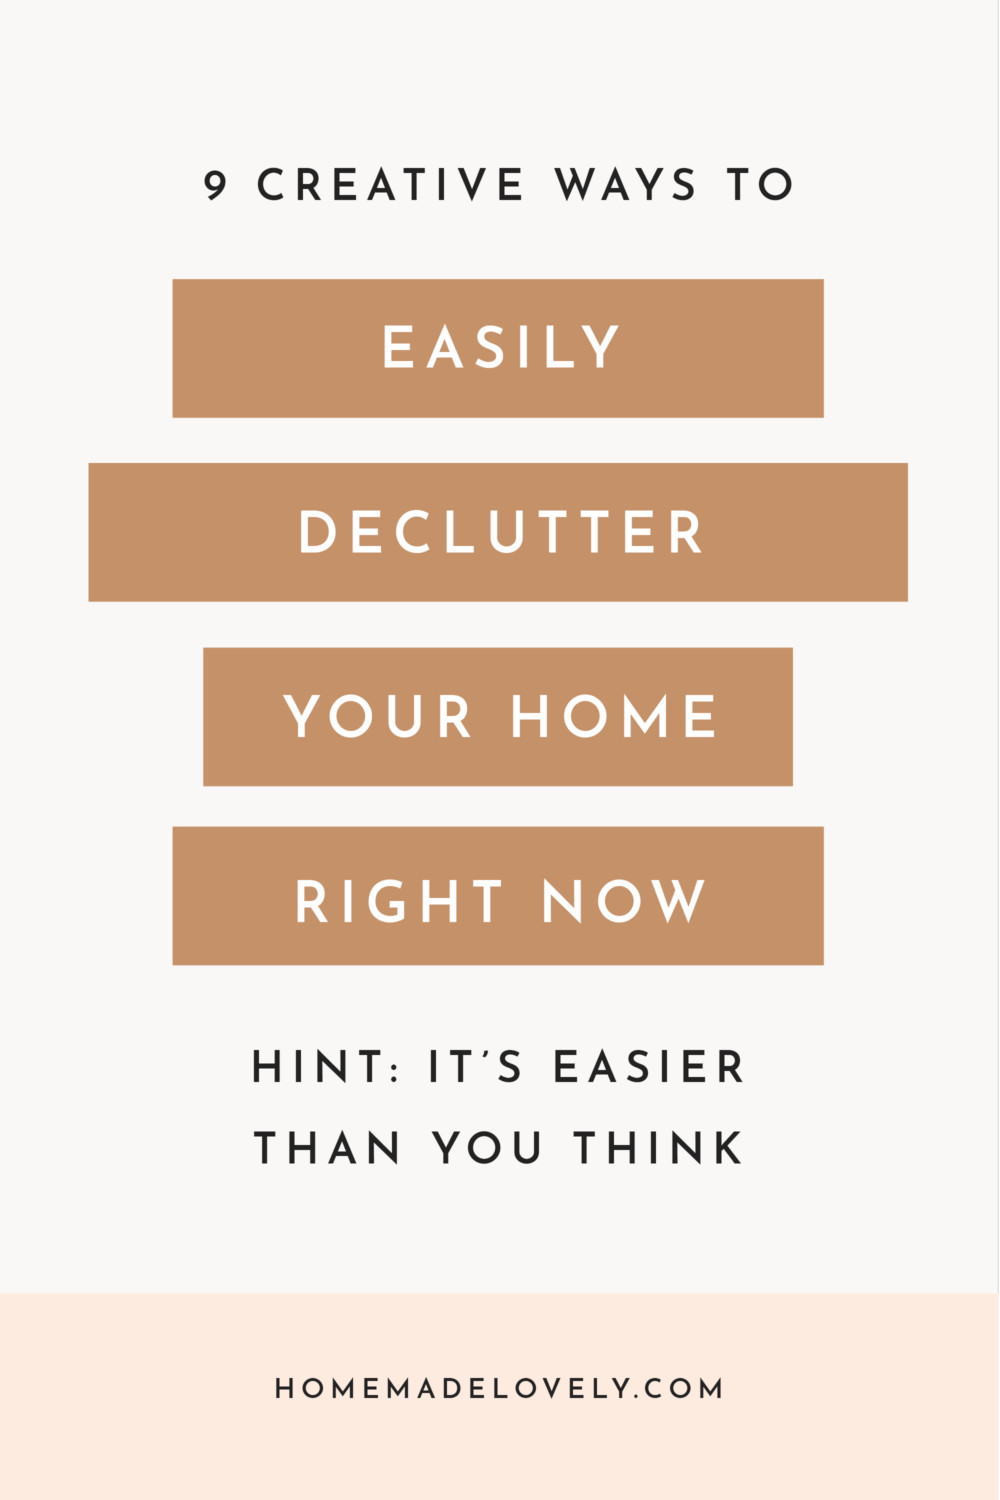 9 creative ways to declutter your home text on bronze colored rectangles with white background